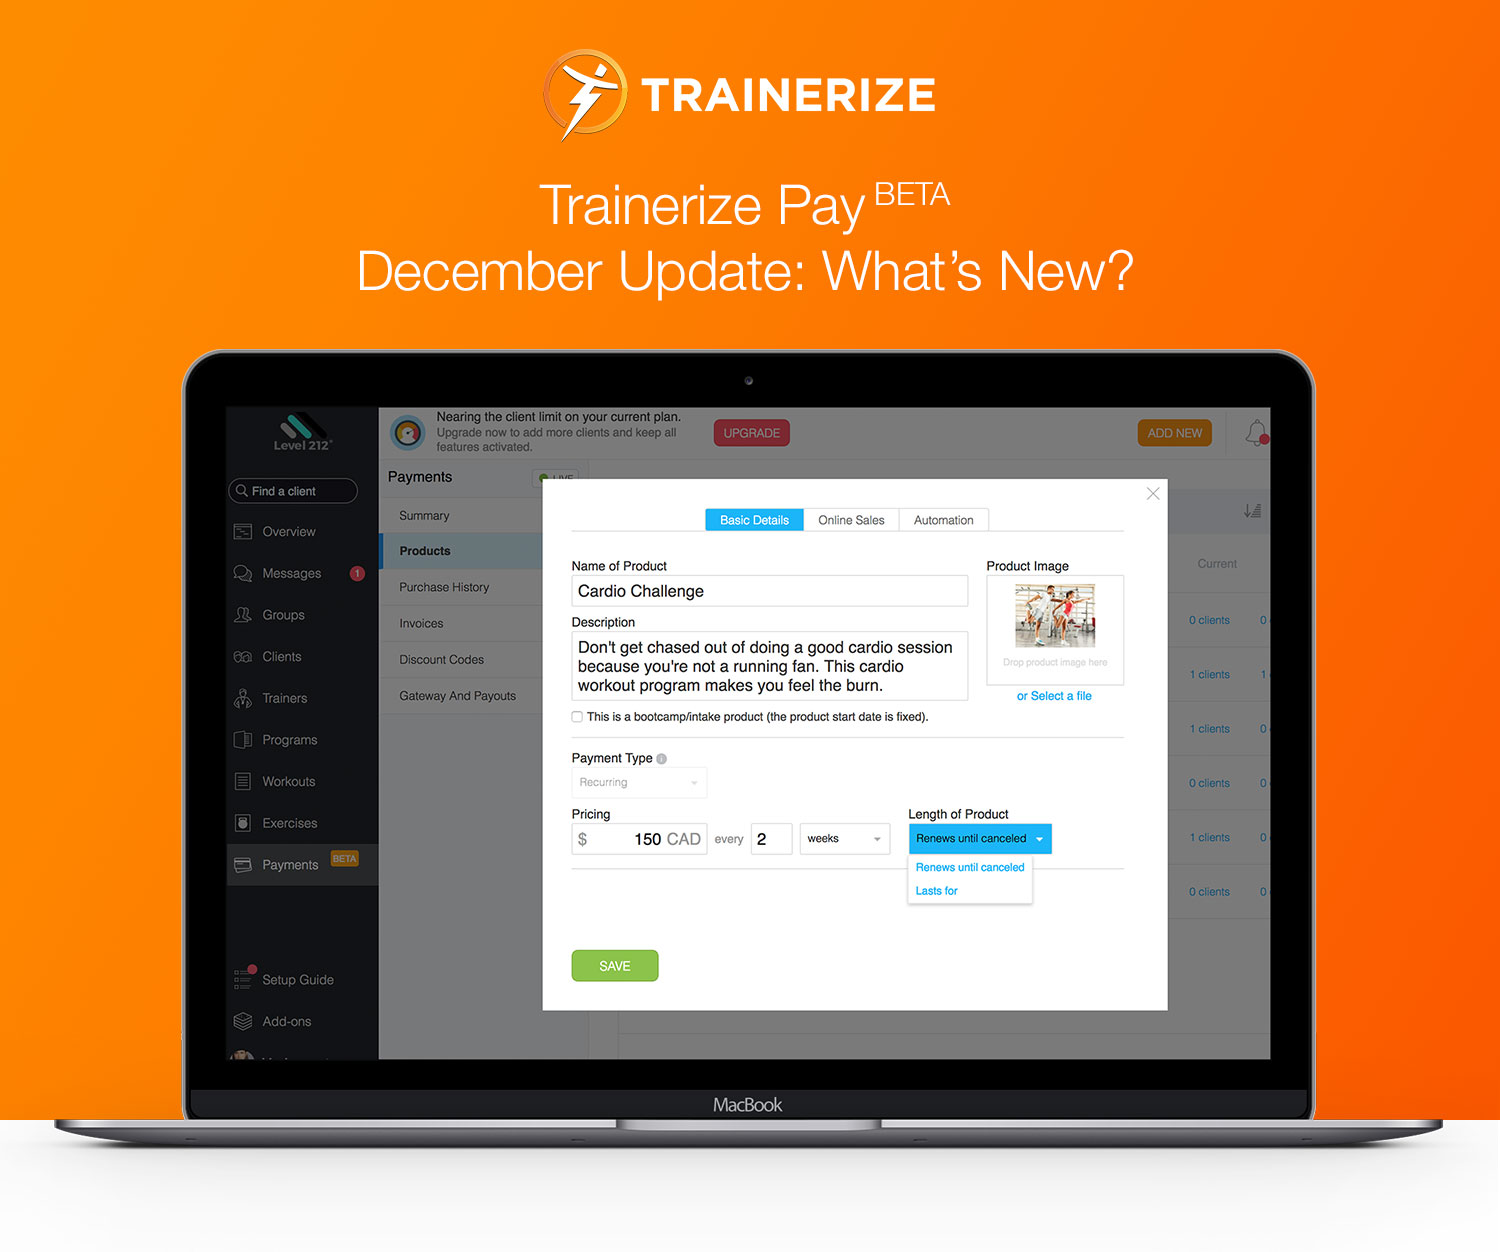 Trainerize Pay BETA December Update